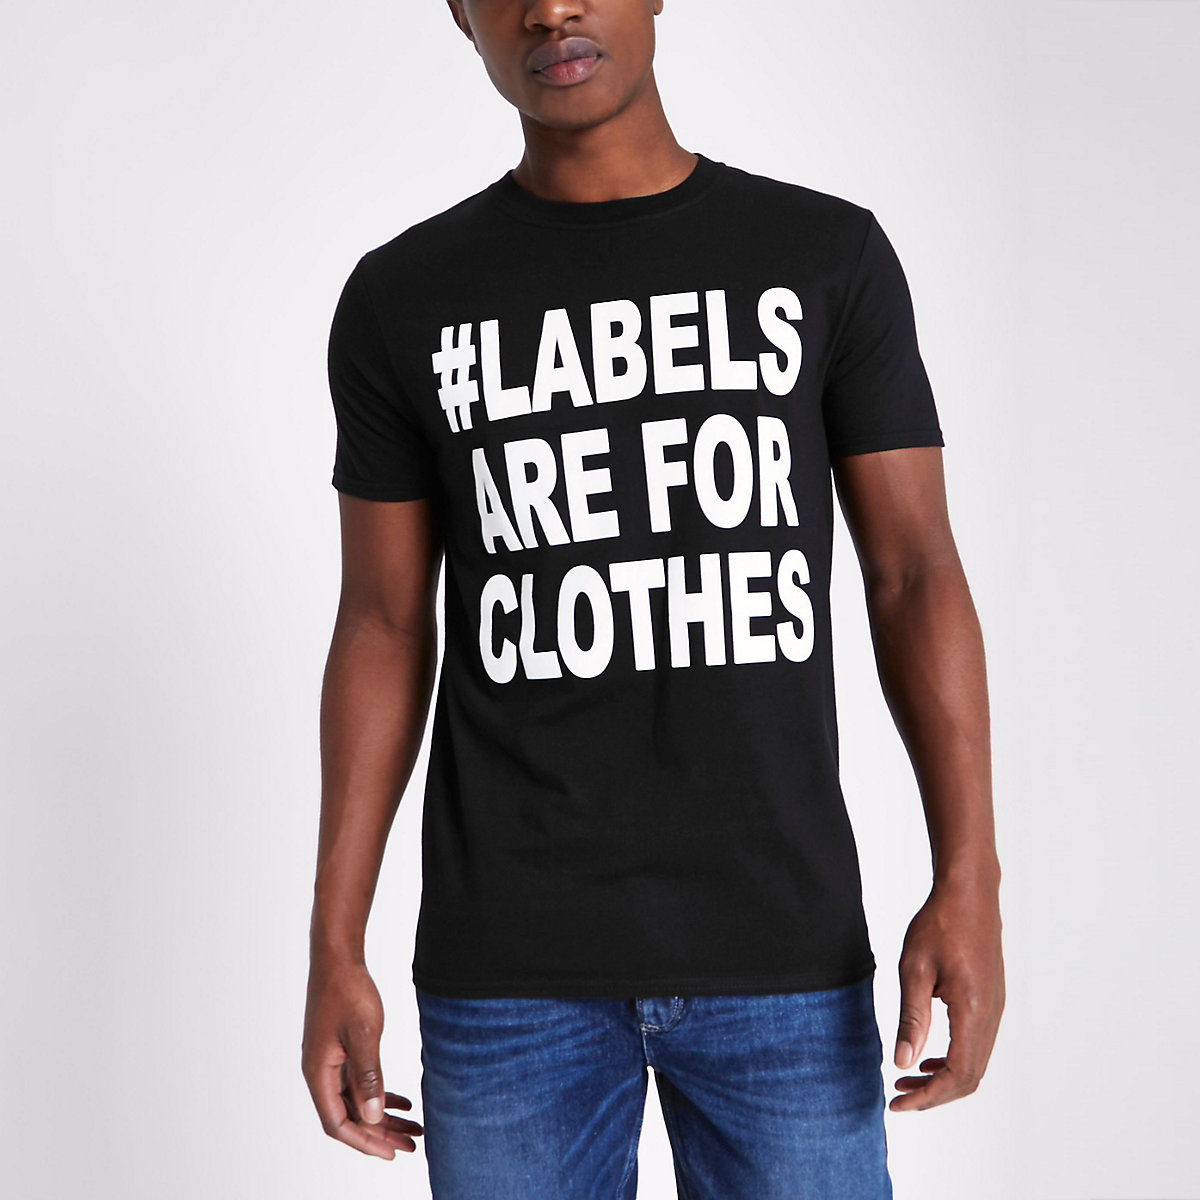 Black Ditch the Label charity T-shirt